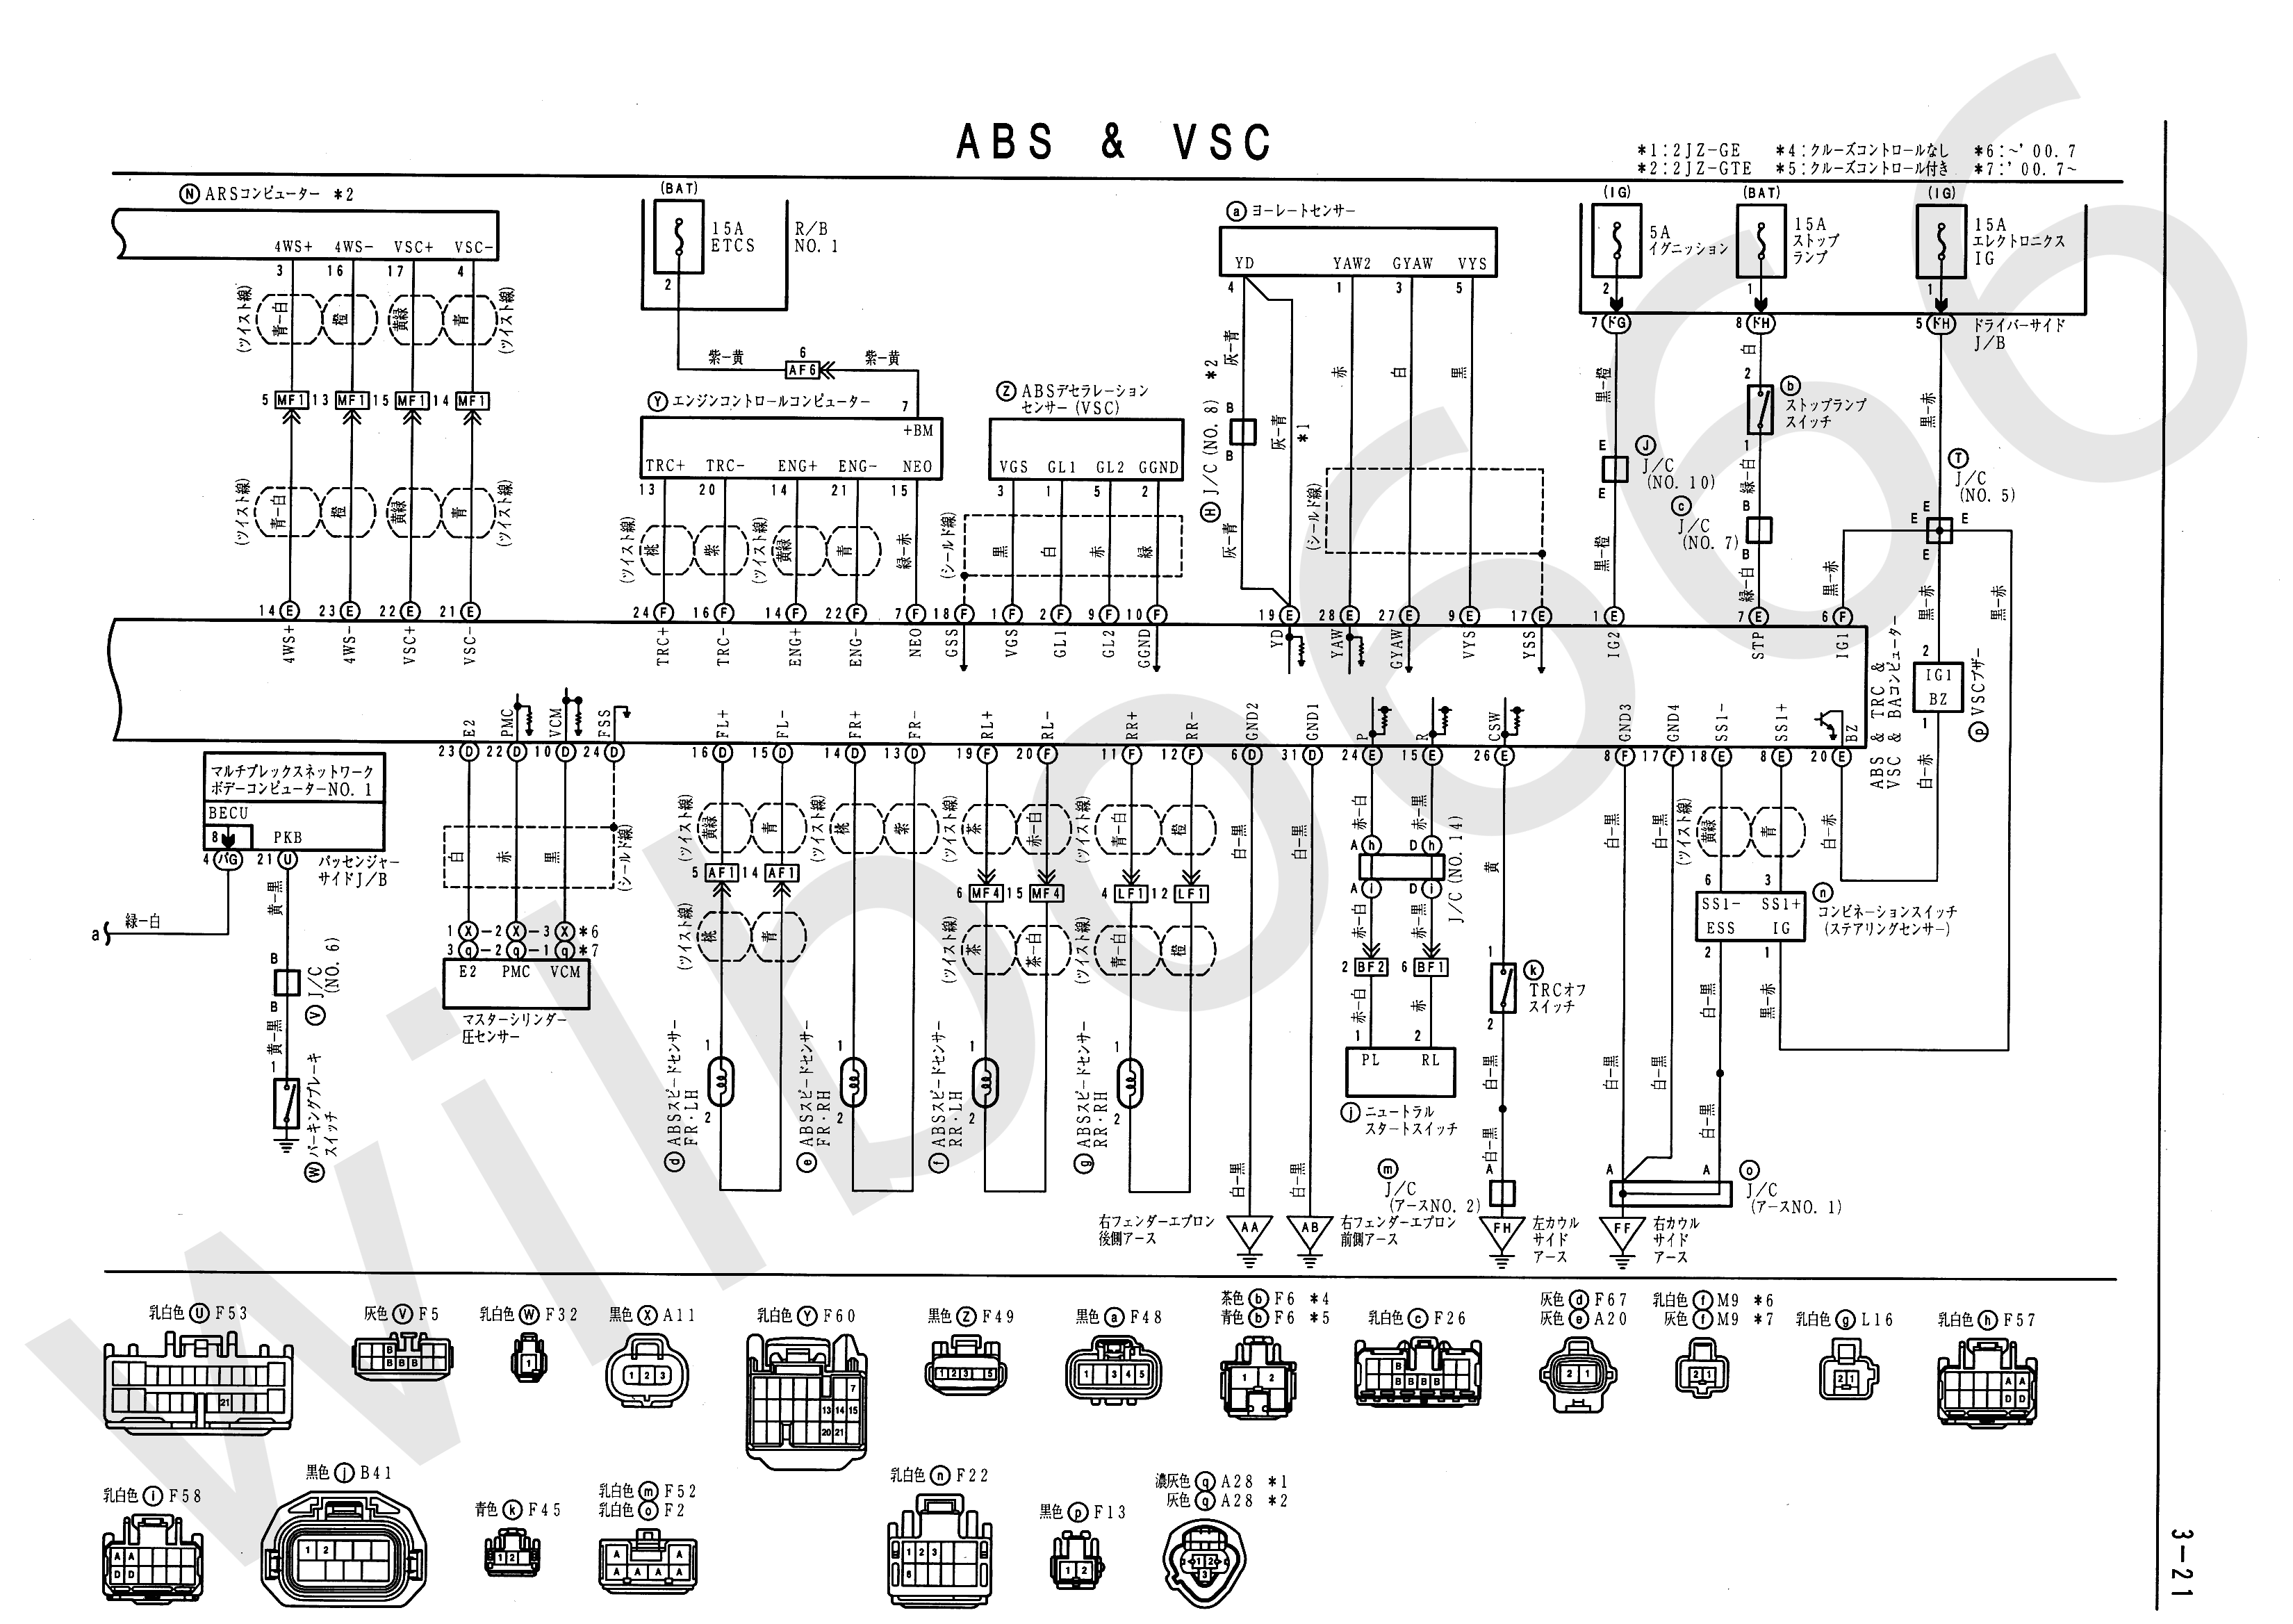 Wilbo666 2jz Gte Vvti Jzs161 Aristo Engine Wiring 2001 S10 Abs Line Diagram Jzs16x Electrical Book 6748505